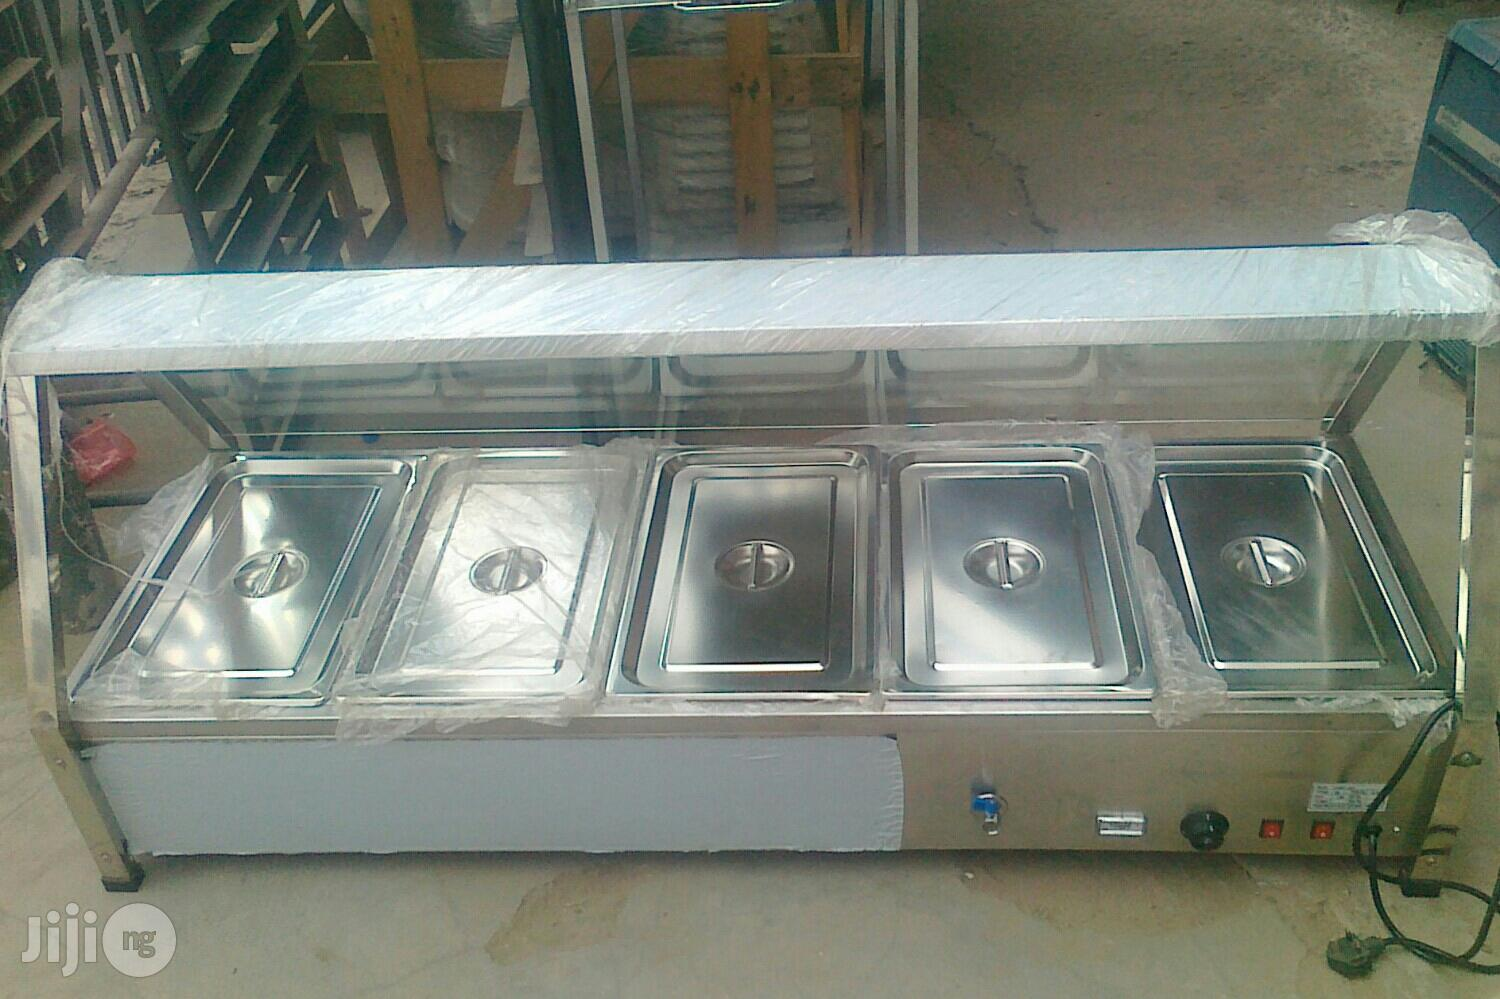 5 Plate Food Display Warmer | Restaurant & Catering Equipment for sale in Ojo, Lagos State, Nigeria